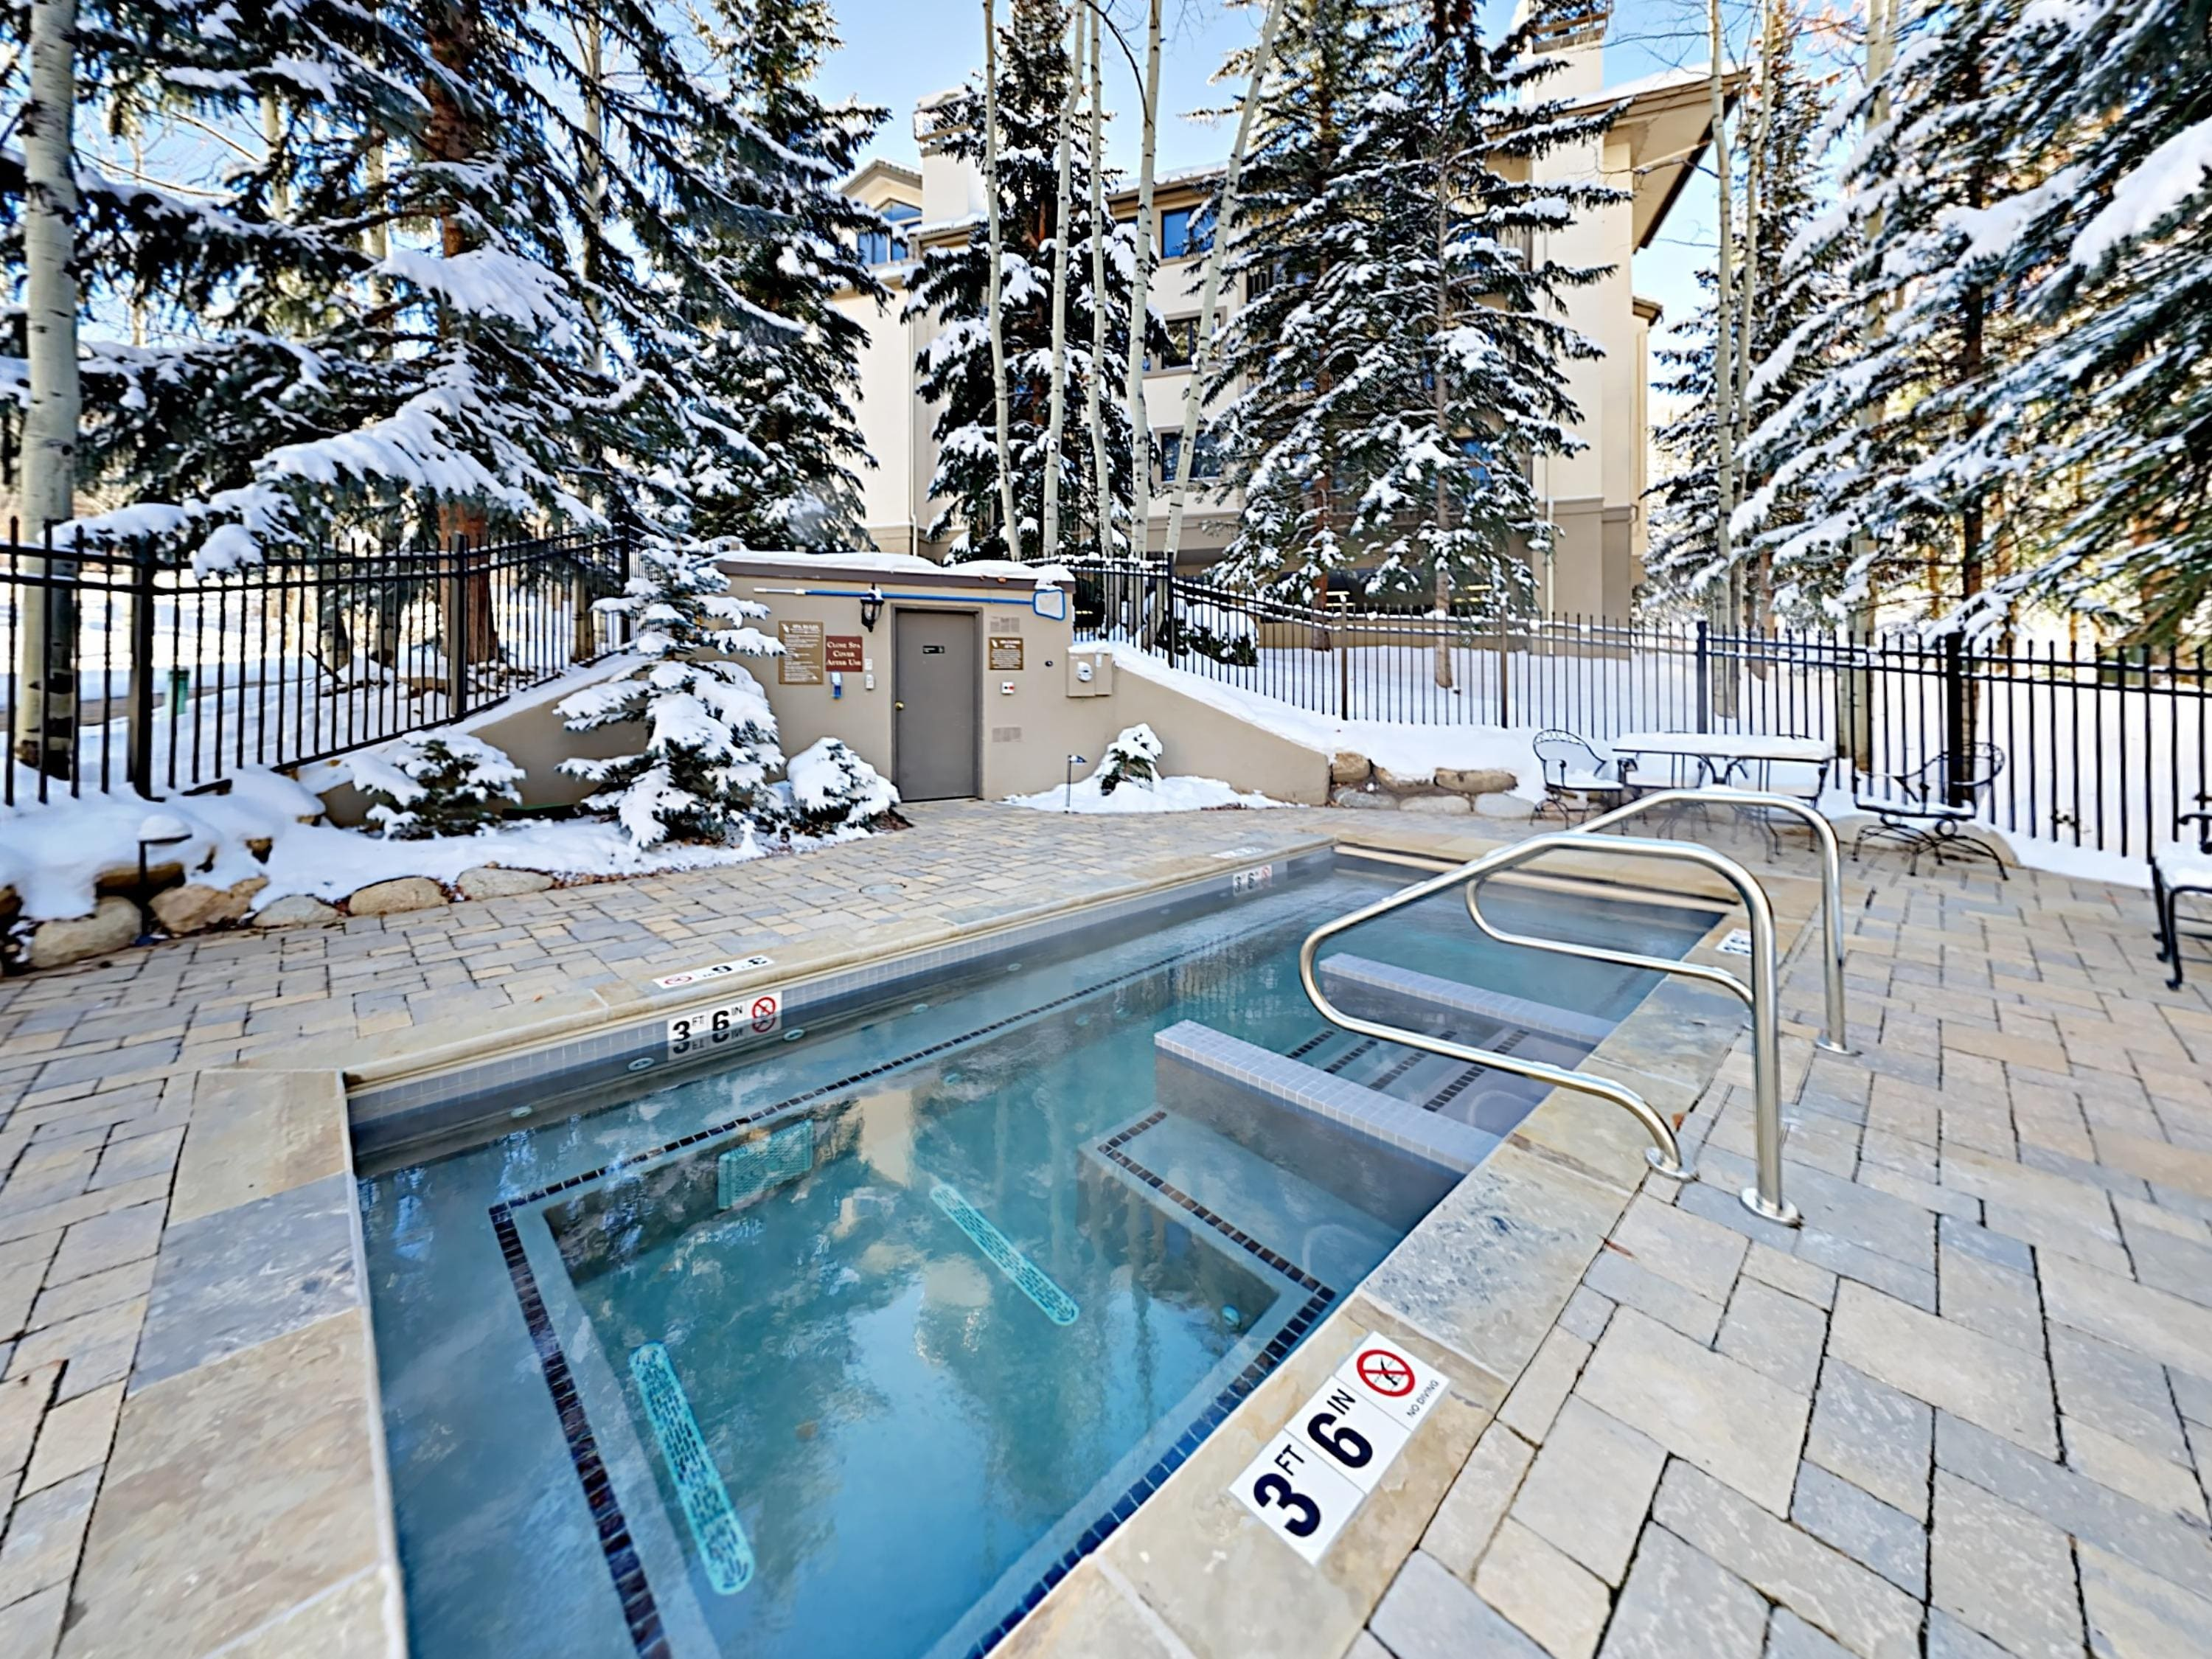 After a day on the slopes, soak in 1 of the outdoor hot tubs on-site.